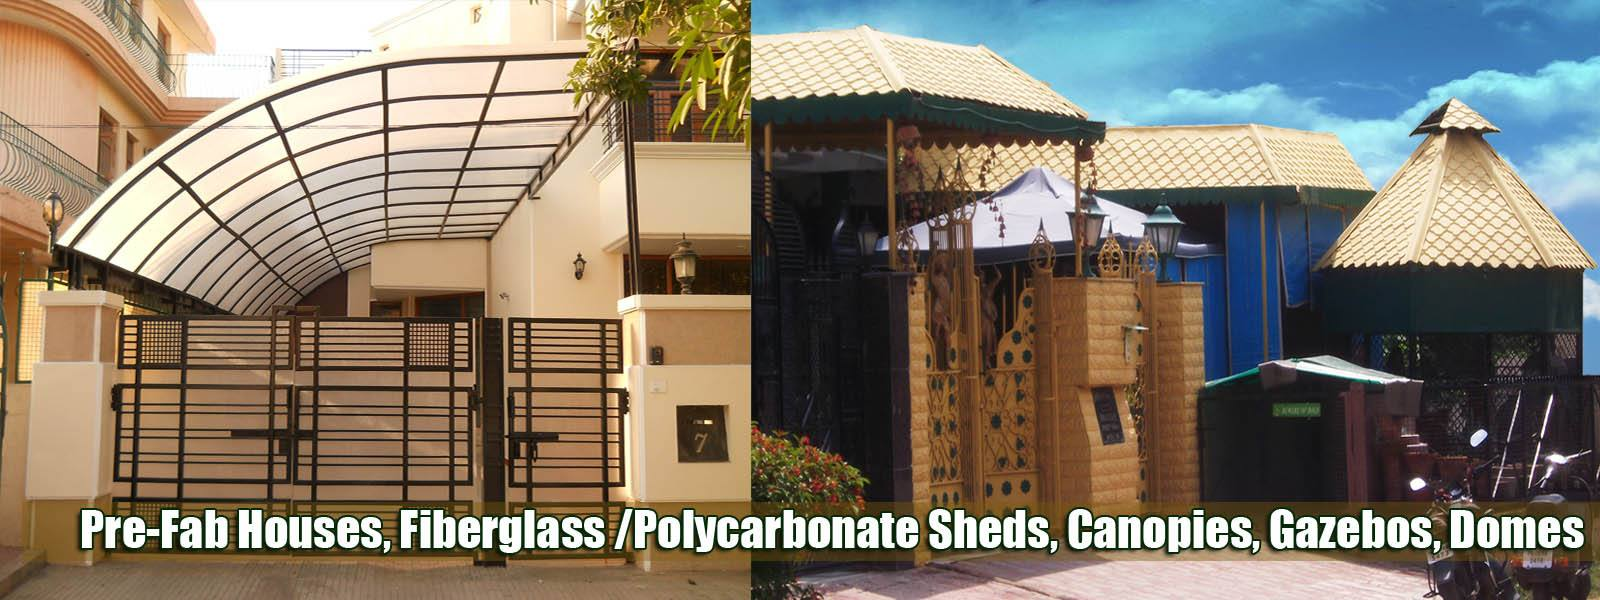 Fiberglass and Polycarbonate Structures